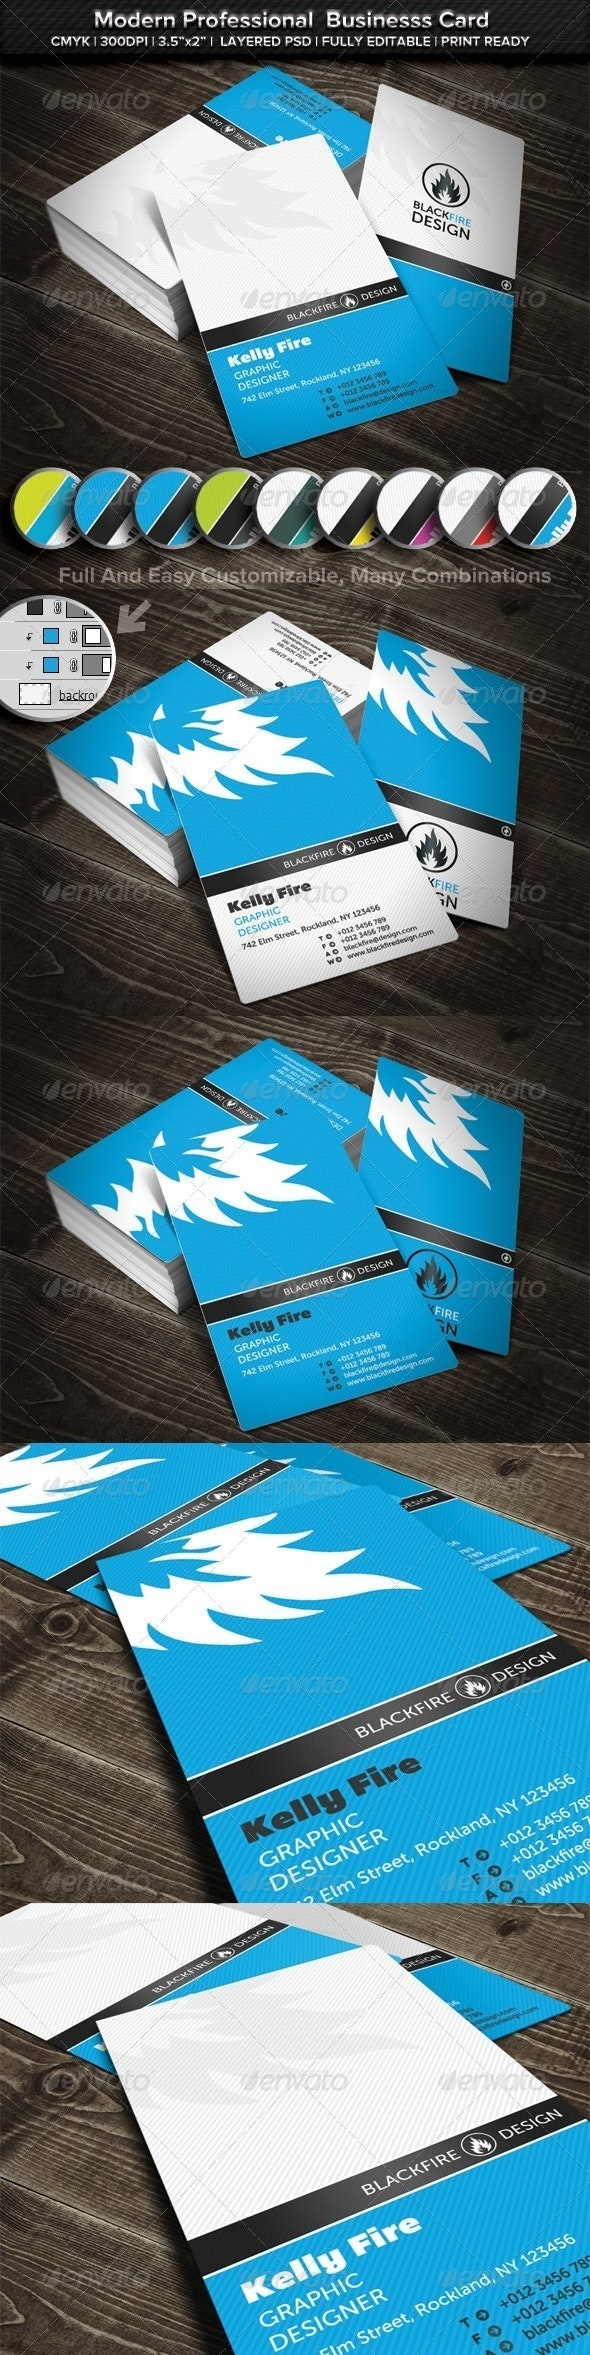 Modern Professional Business Card - Business Cards Print Templates